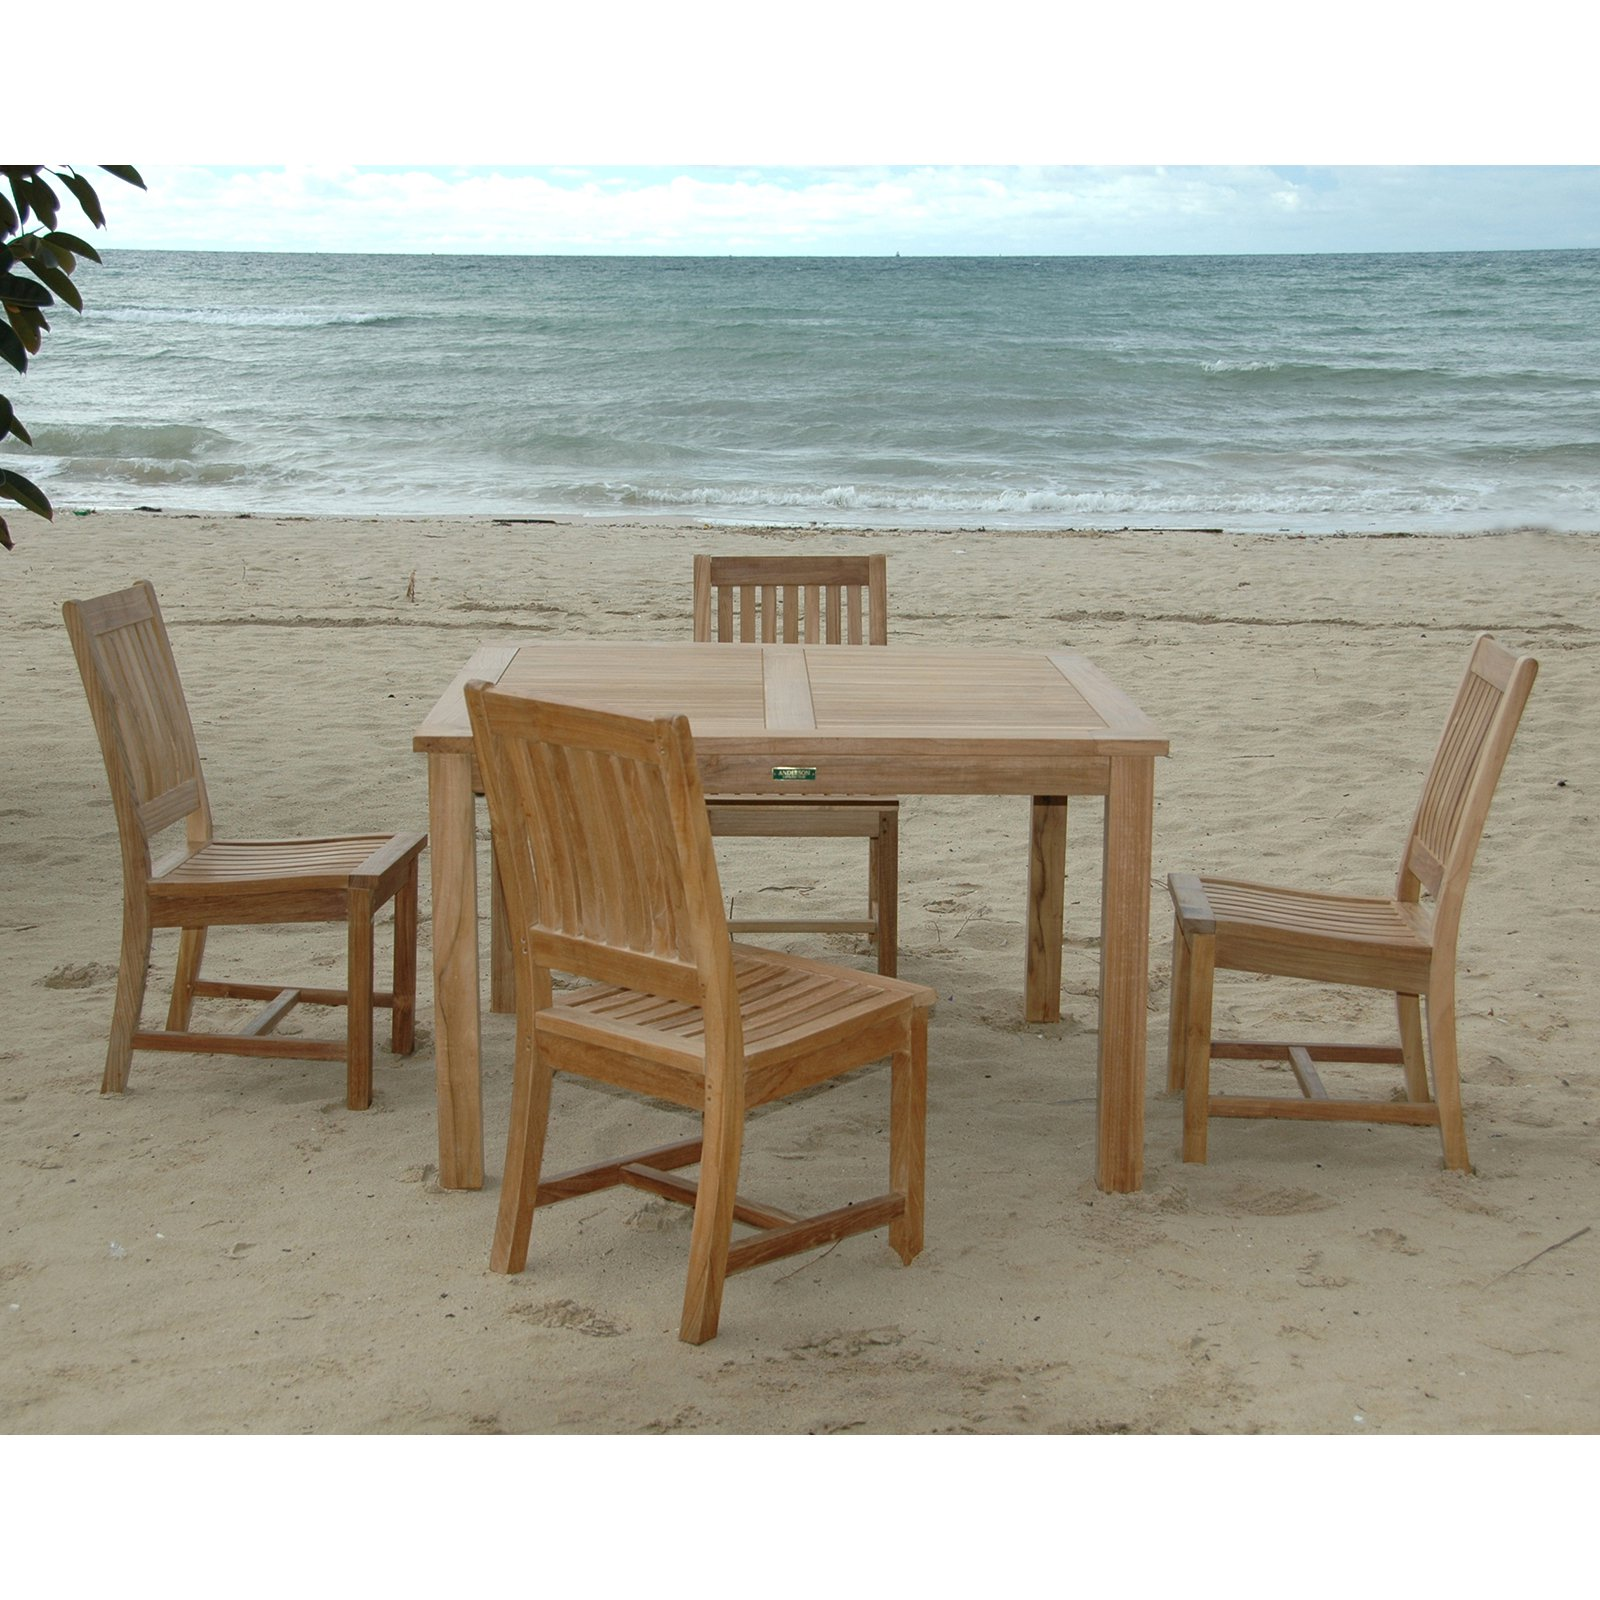 Anderson Teak Rialto 5 Piece Square Patio Dining Room Set by